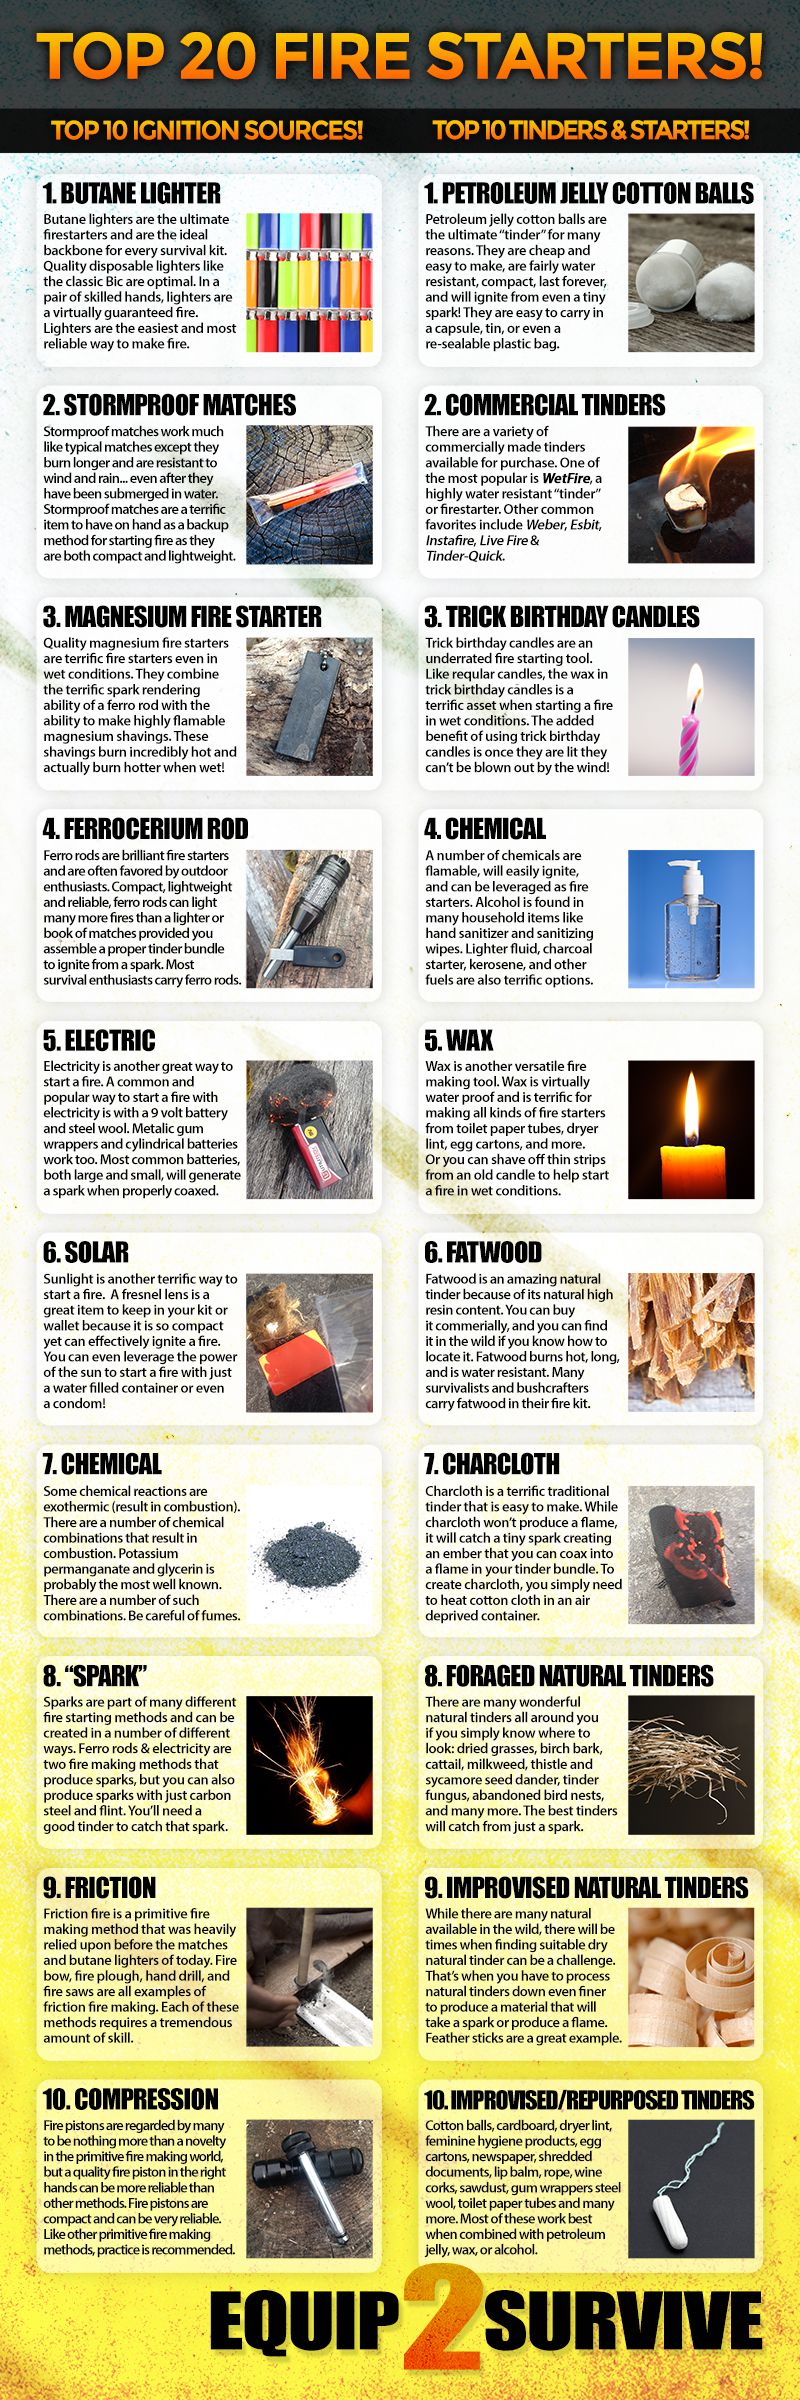 Top 10 Fire Starters and Tinders!! The BEST INFOGRAPHIC about various ignition sources, tinders and fire starters for survival, bushcraft, camping and preparedness enthusiasts! Learn more at equip2survive.com!